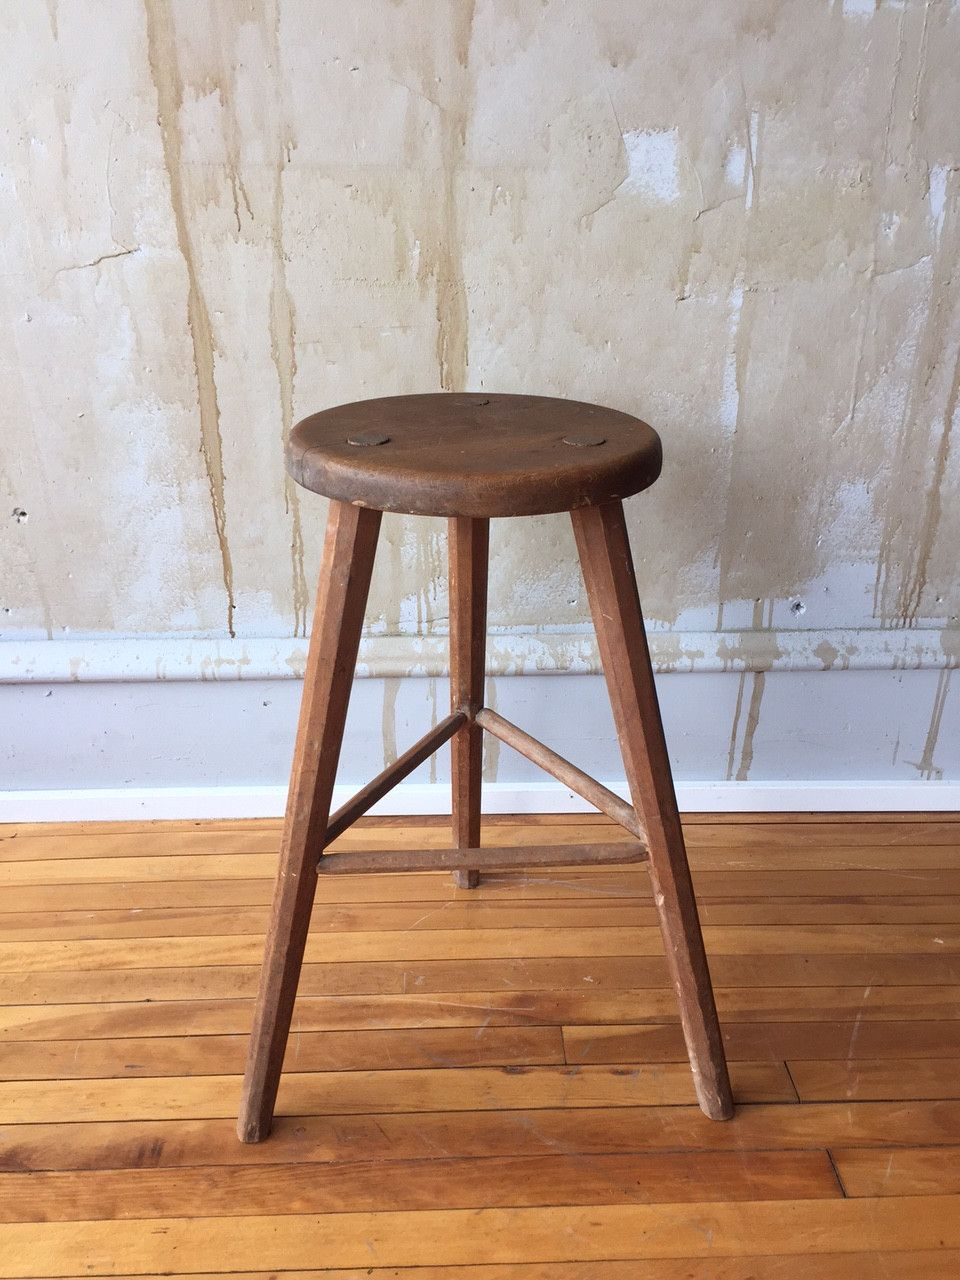 Vintage Italian wooden stool. The round seat and three legs give this stool  great character - Vintage Italian Wooden Stool. The Round Seat And Three Legs Give